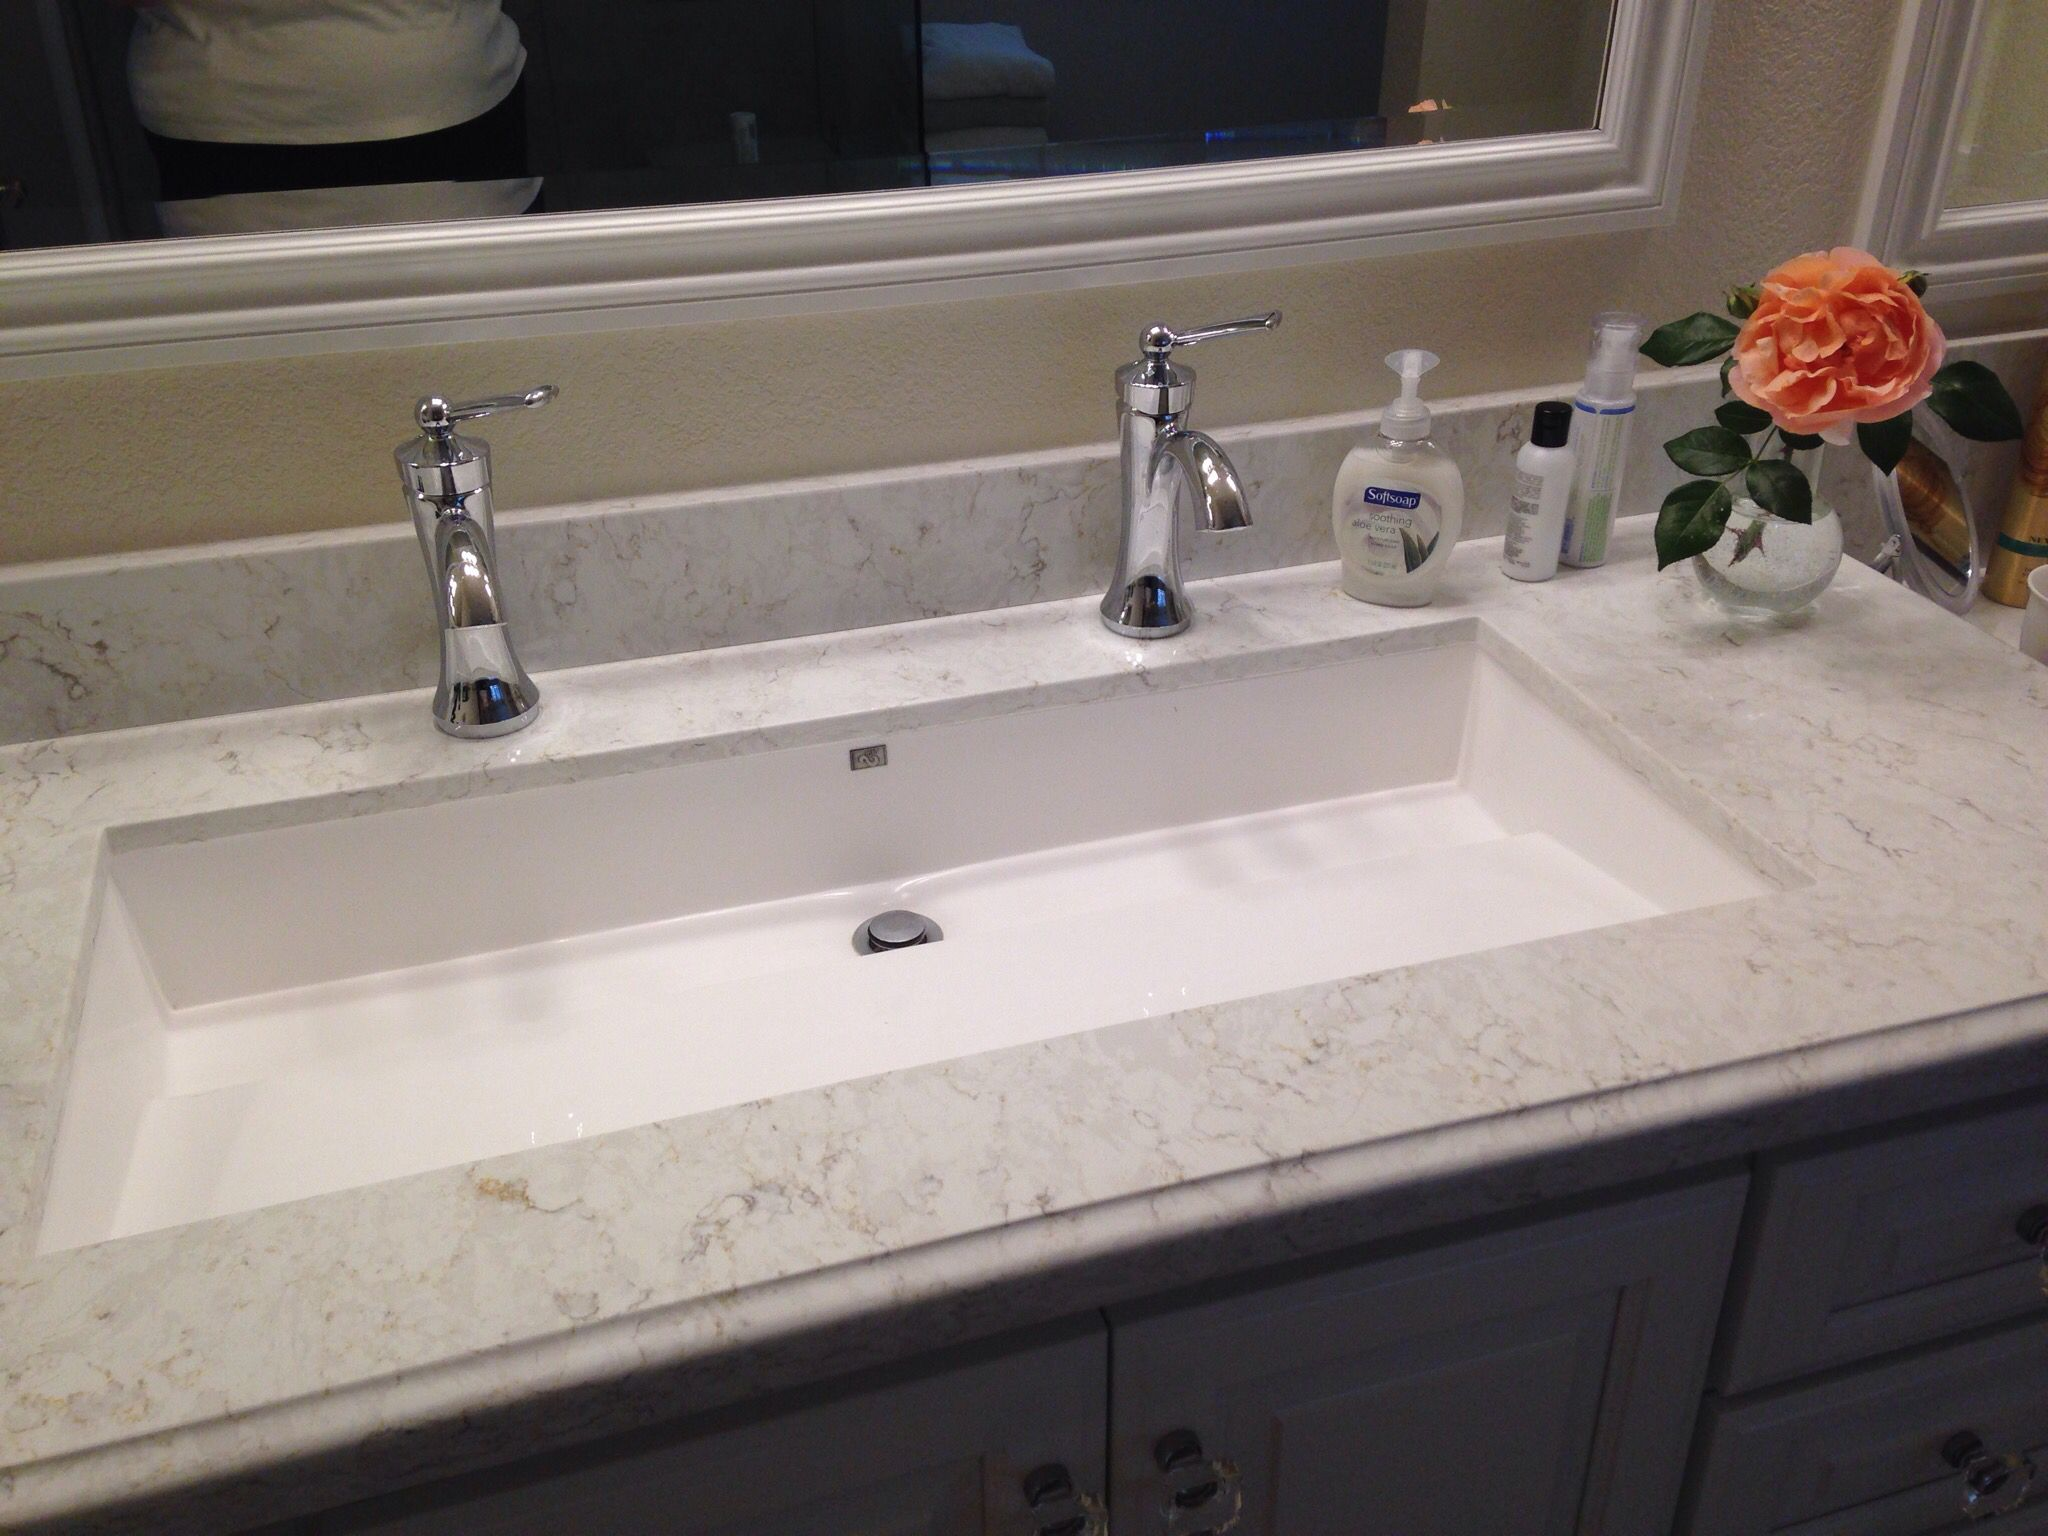 Surprising Pin By Taylor Brooke On Bathroom In 2019 Trough Sink Download Free Architecture Designs Scobabritishbridgeorg